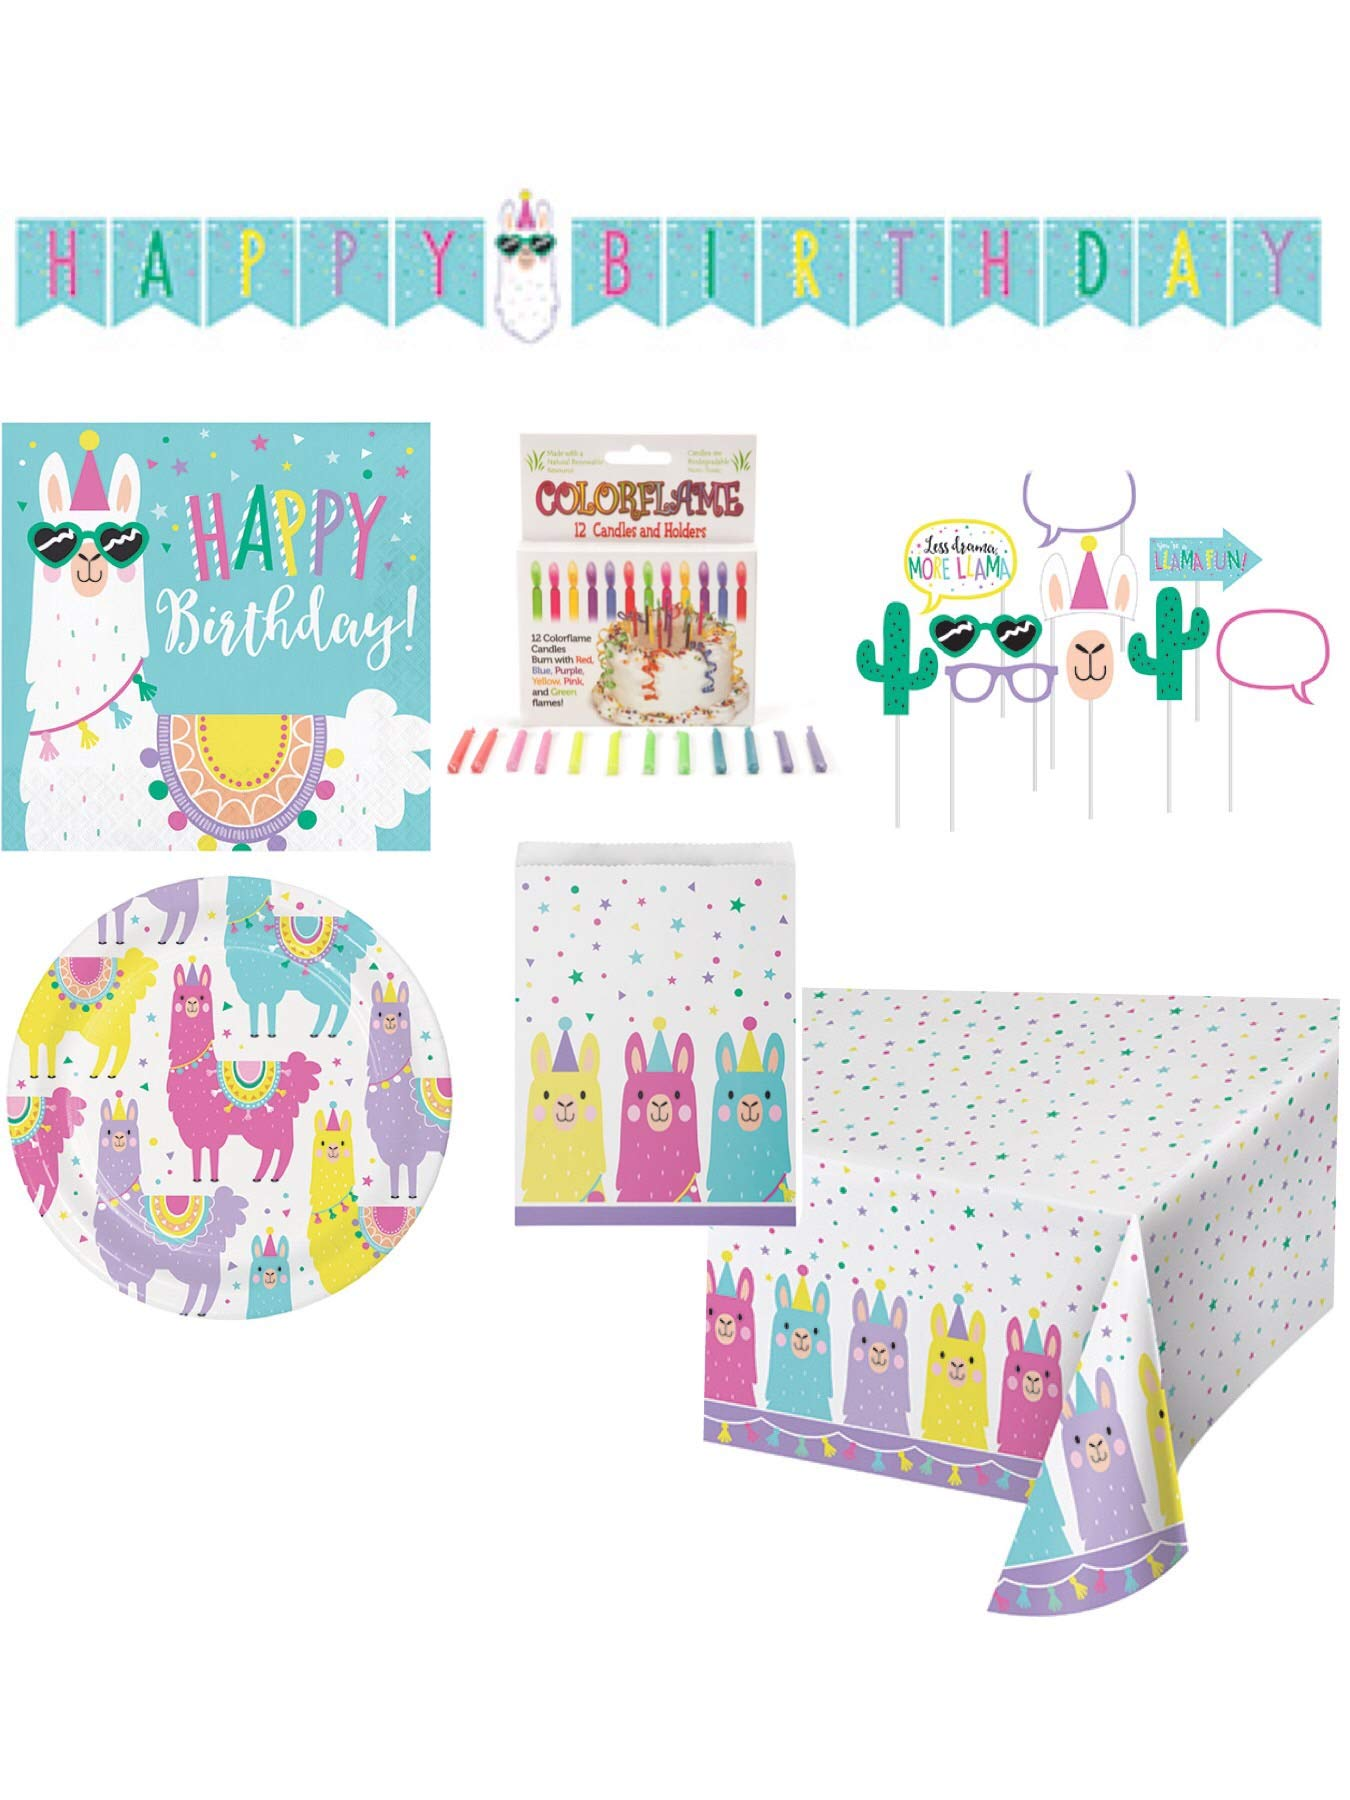 Llama Themed Happy Birthday Paper Party Supplies Serves 16 Cake Plates, Beverage Napkin, Banner, Table Cover, Photo Props, Loot Bags, Candle and Grandma Olive's Recipe